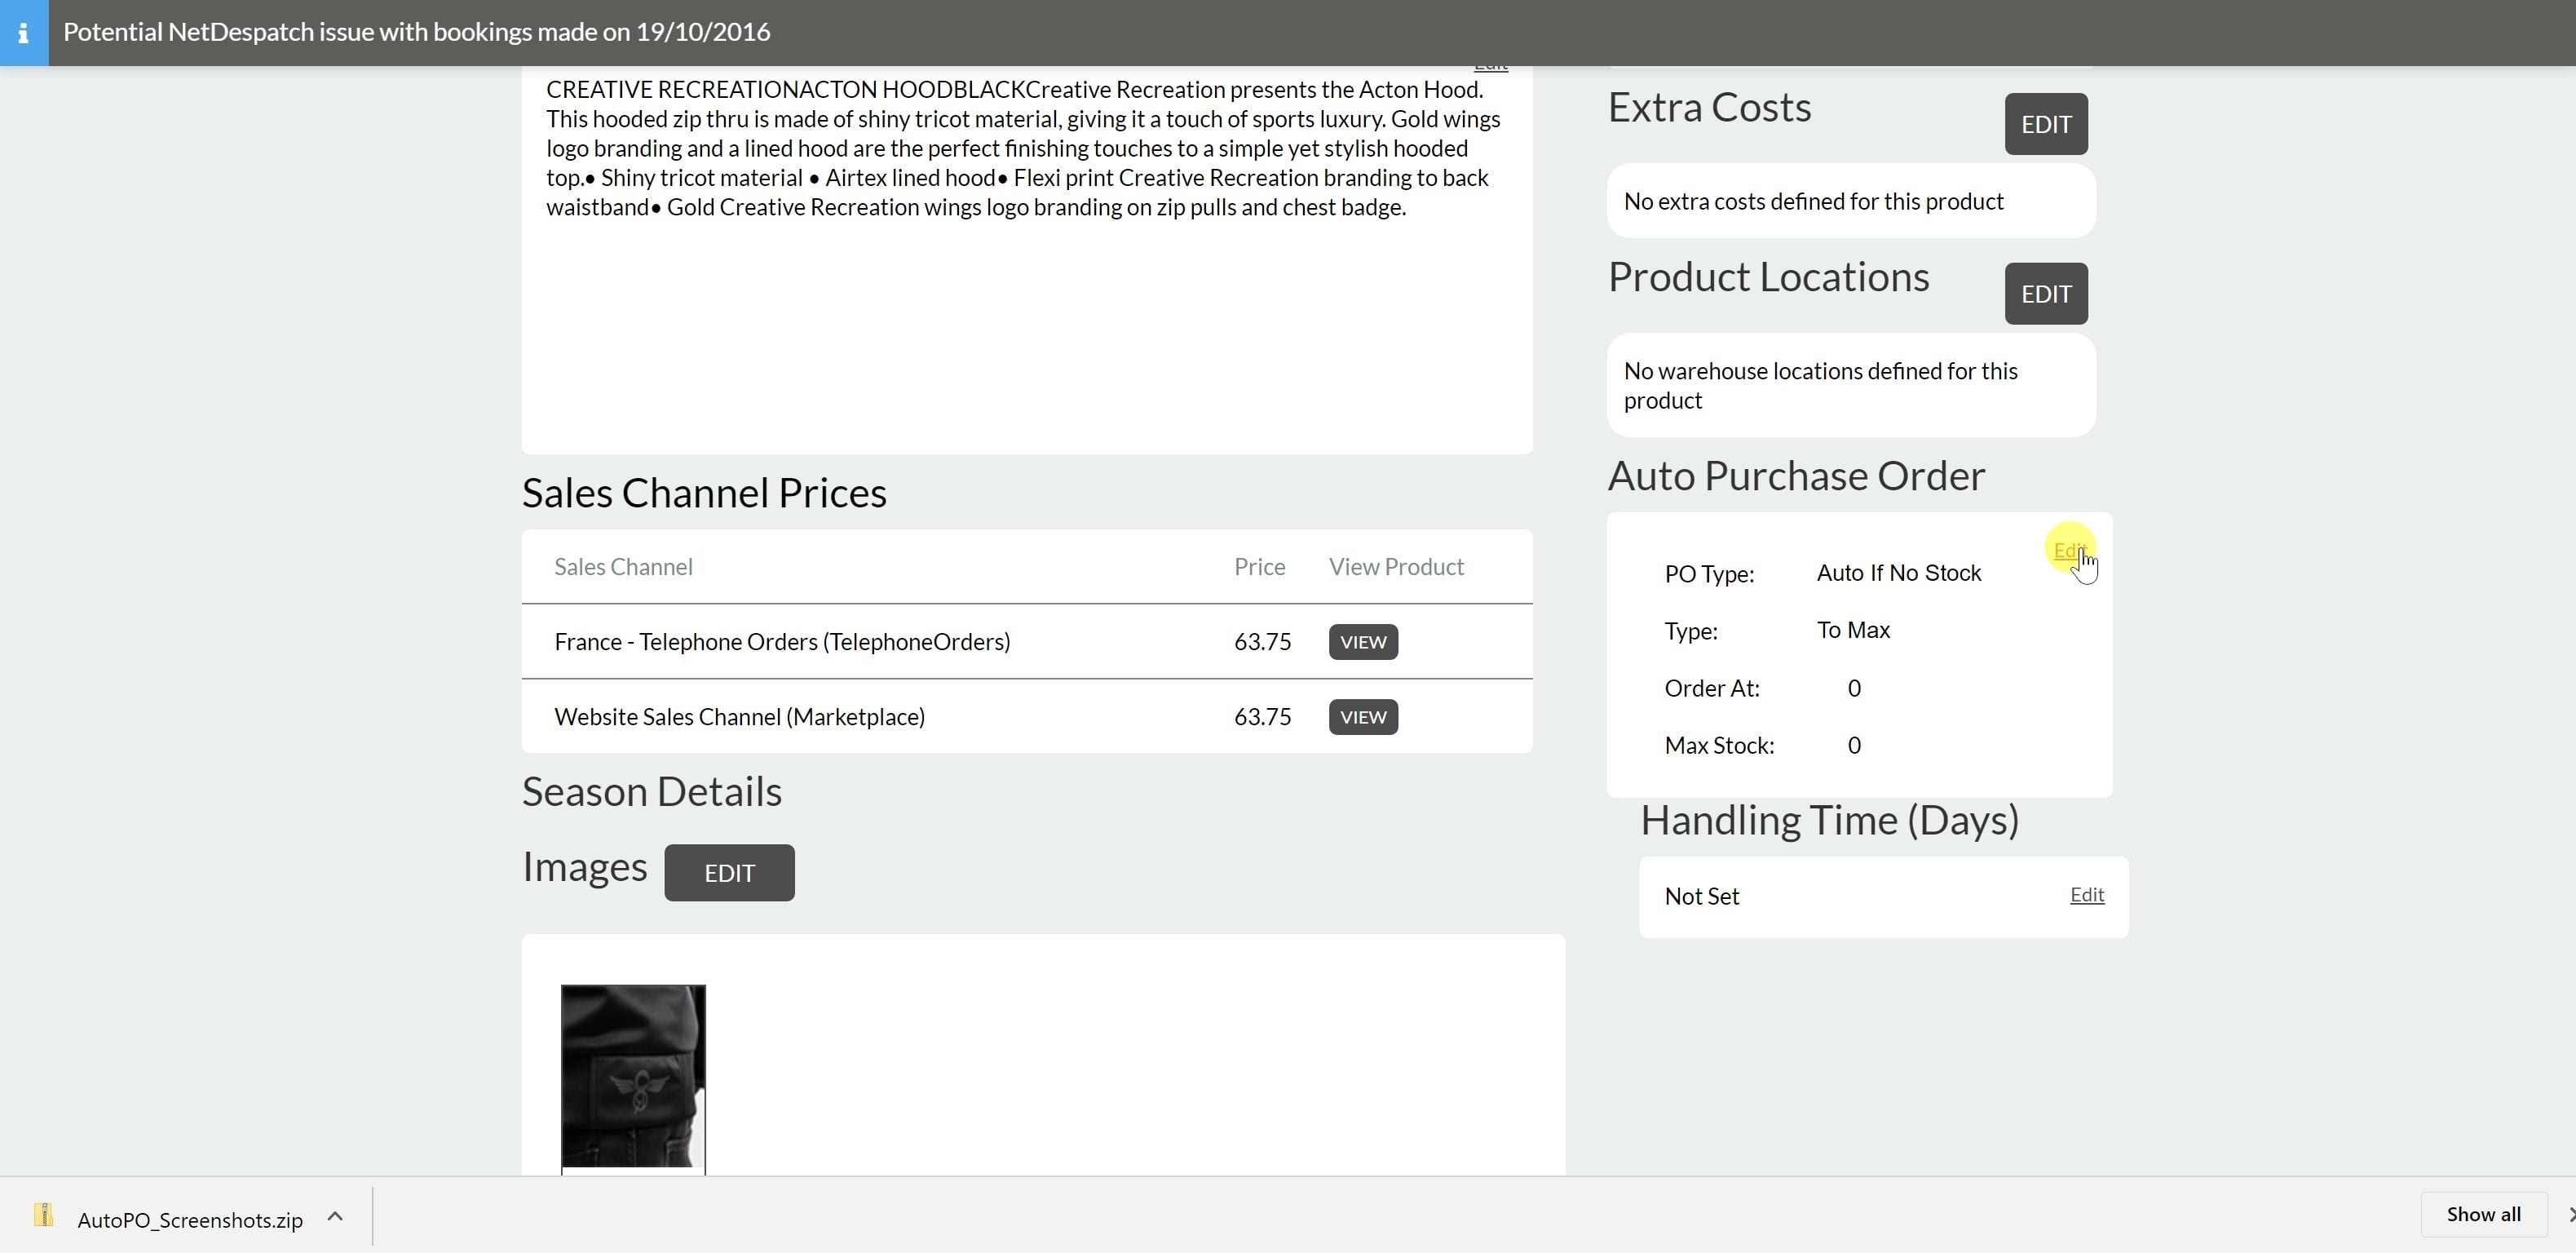 4. Click edit on the Auto Purchase Order Section